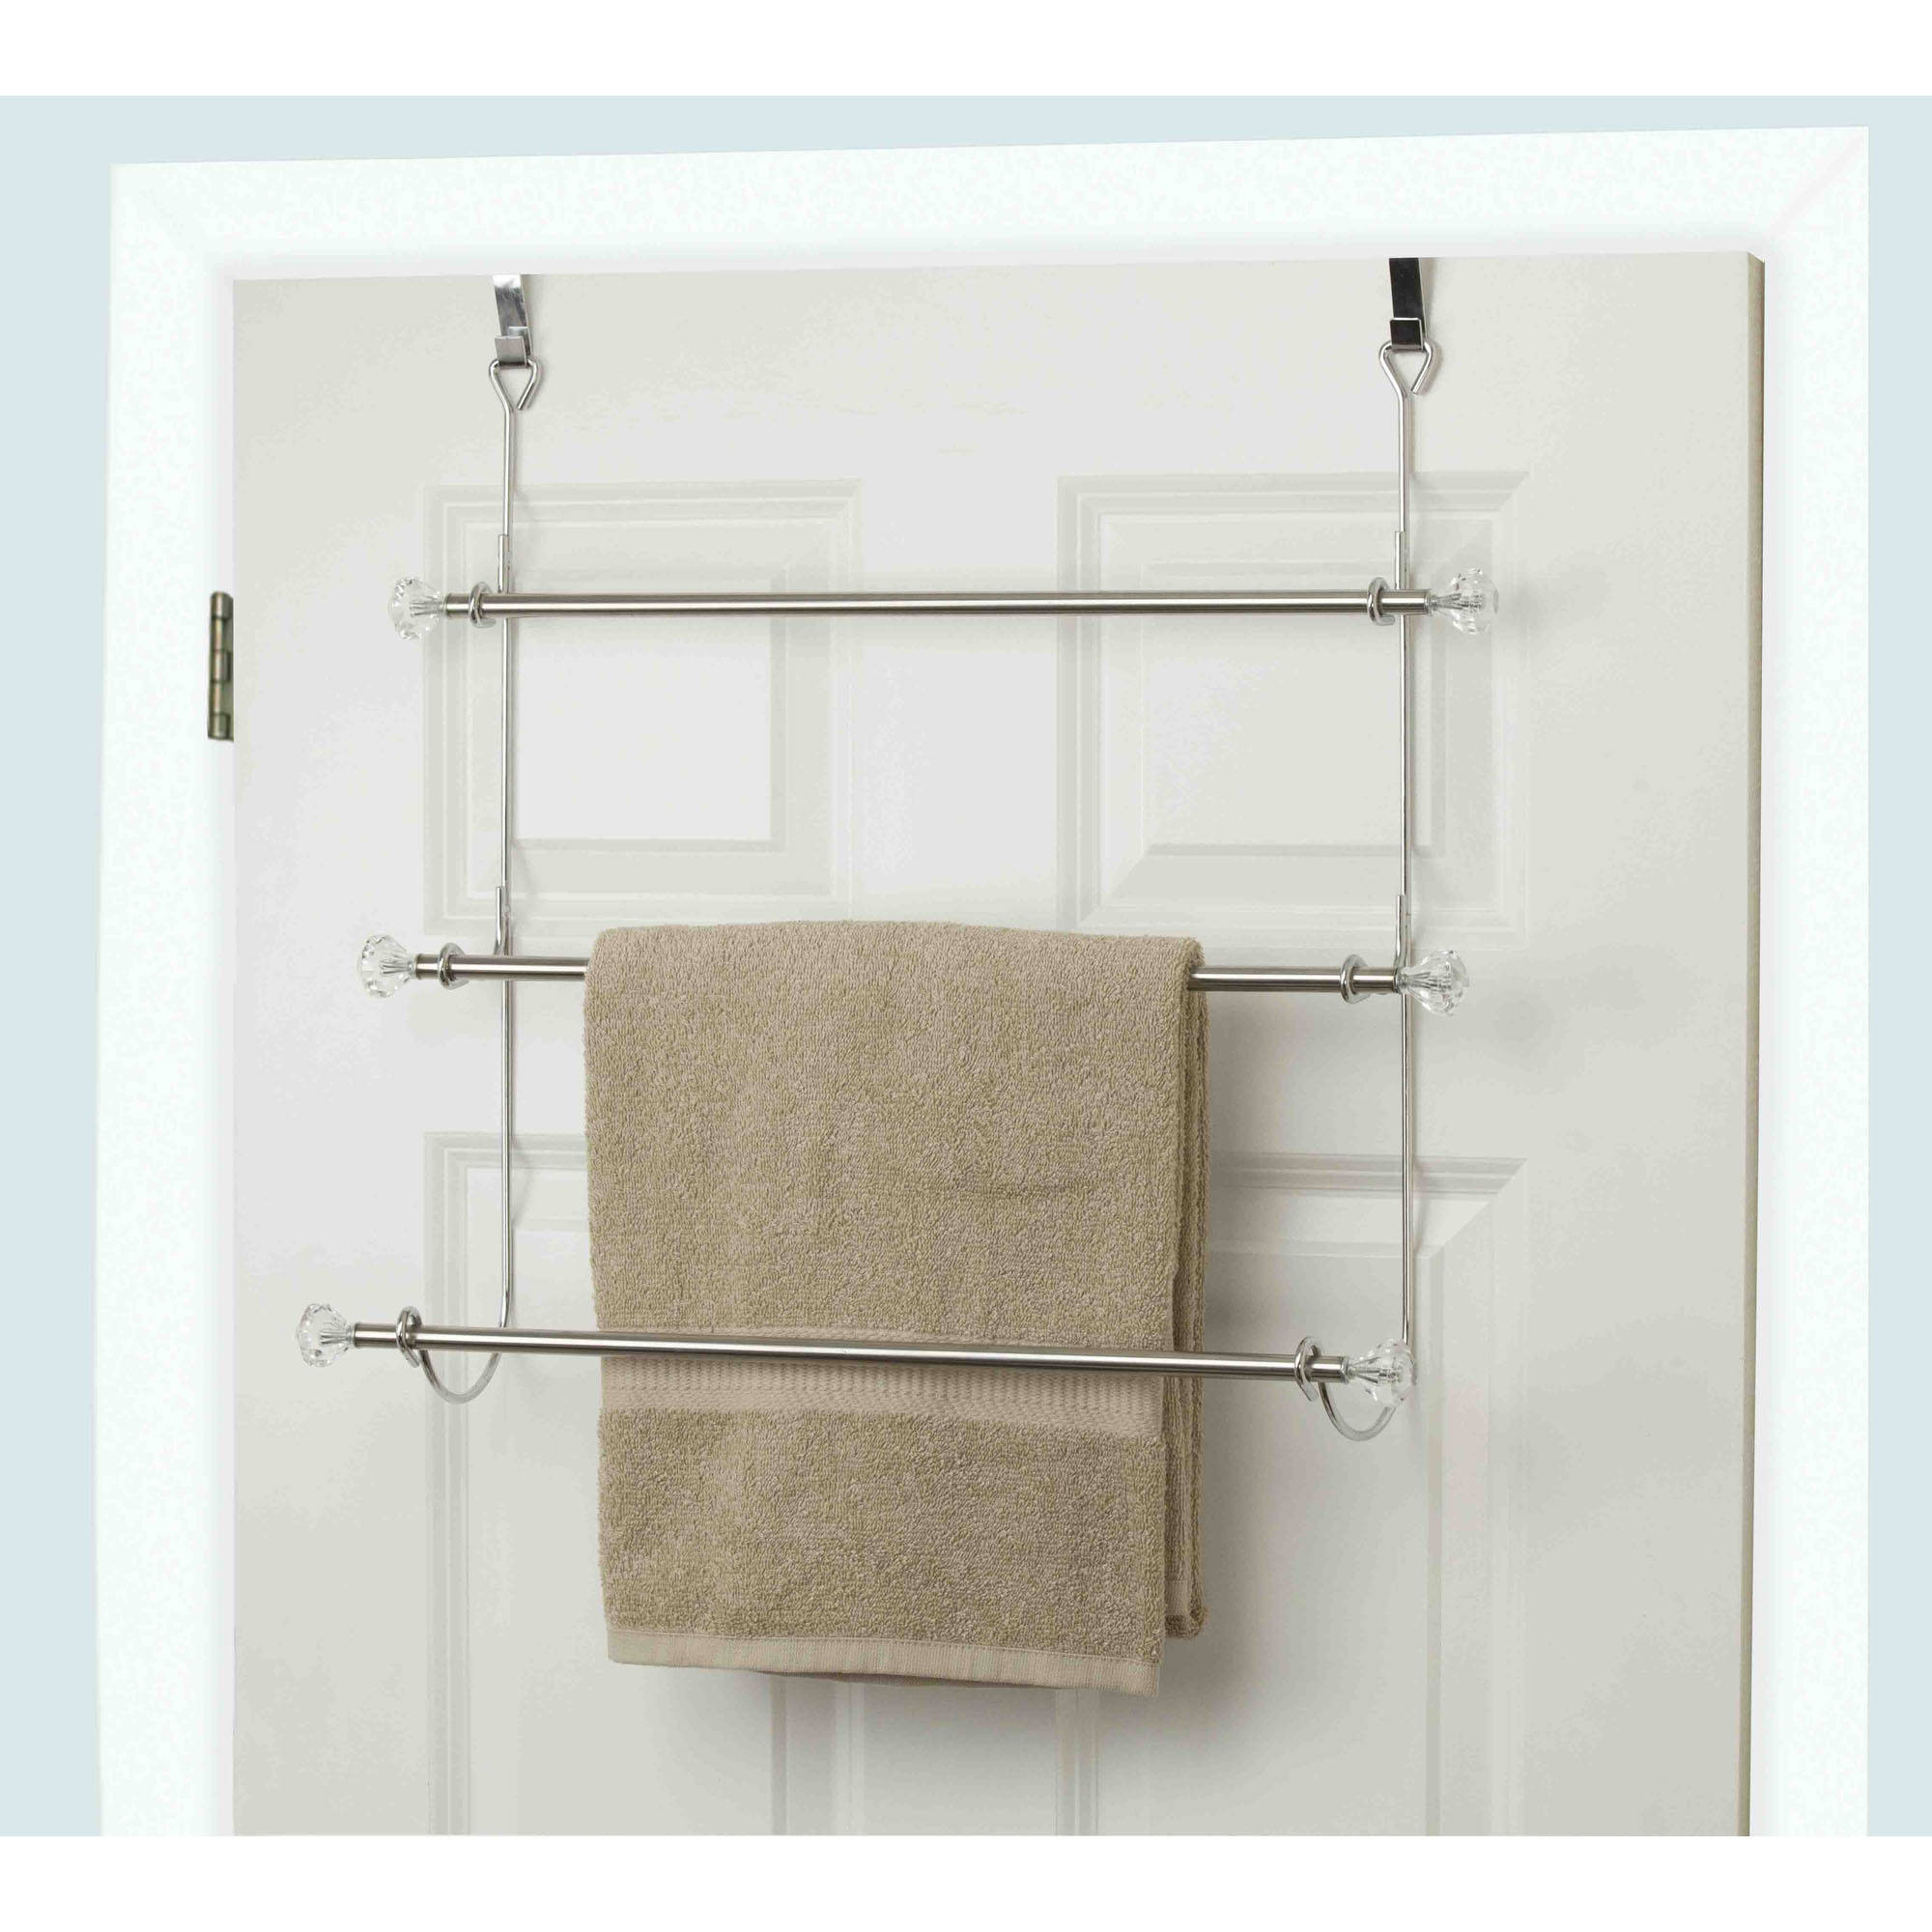 Home Basics 3 Tier Chrome Plated Steel Over The Door Towel